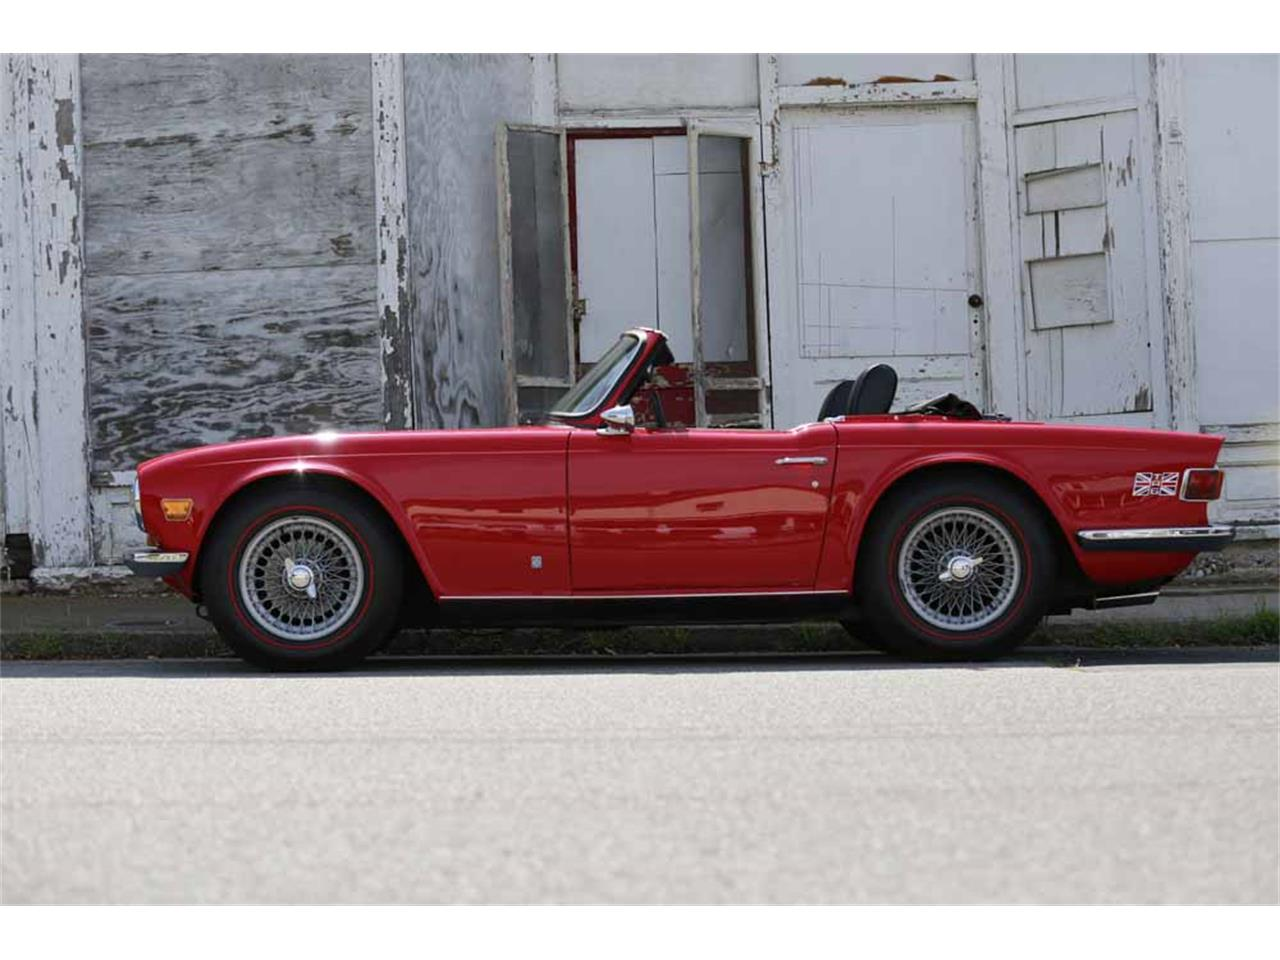 Large Picture of Classic 1969 Triumph TR6 located in Waynesboro Virginia Auction Vehicle Offered by Gassman Automotive - J14Z